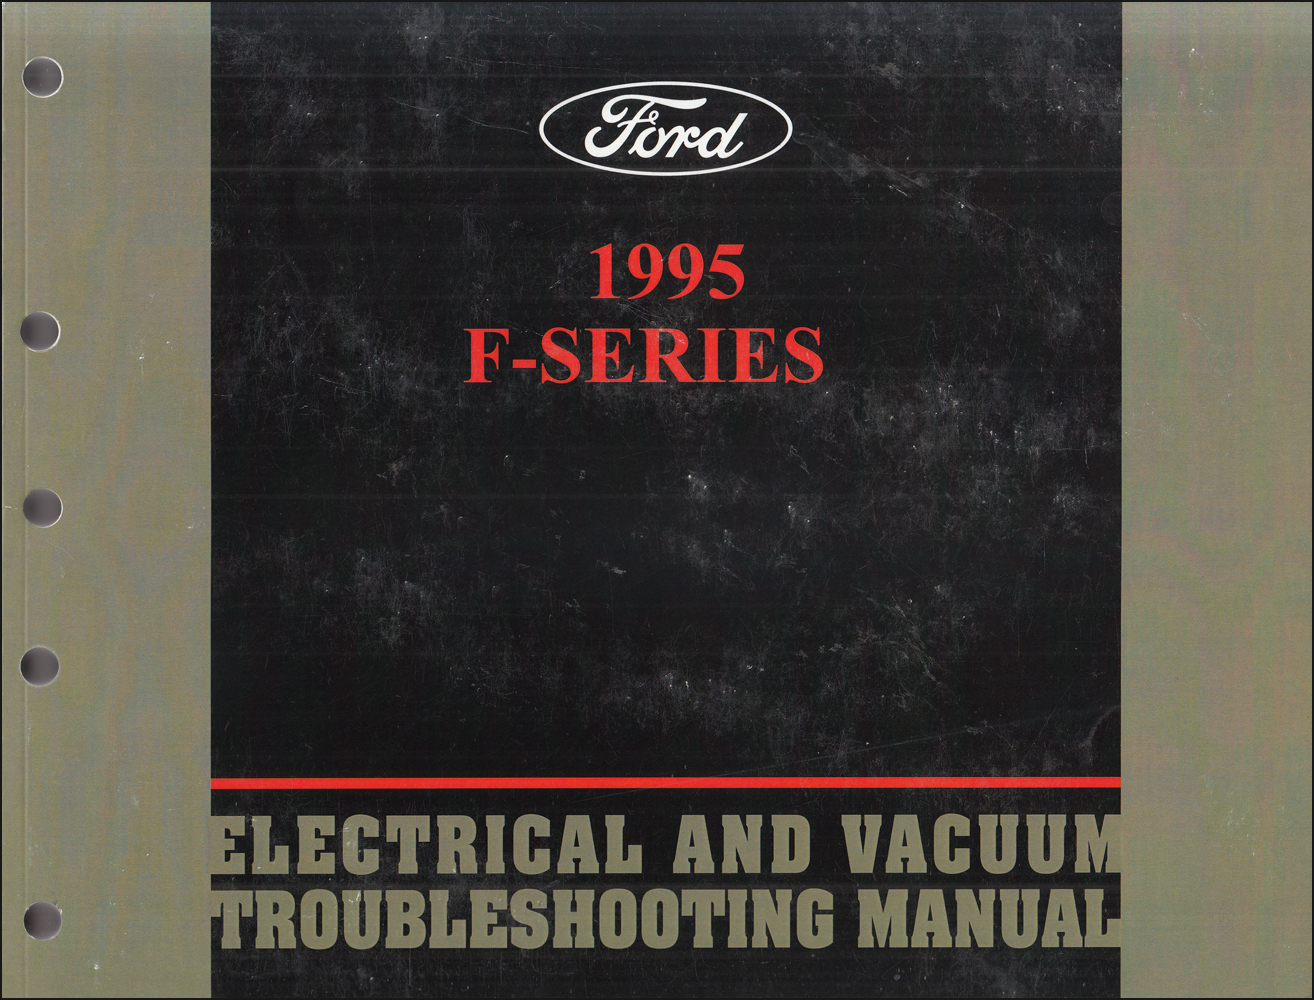 Ford Pickup Truck Wiring Diagram on 1952 ford pickup wiring diagram, 1960 cadillac wiring diagram, 40 ford wiring diagram, 1942 ford wiring diagram, 1950 ford pickup wiring diagram, 1951 ford pickup wiring diagram, 1949 mercury wiring diagram, 1939 ford pickup wiring diagram, 1946 dodge truck wiring diagram, 1940 ford wiring diagram, 1960 ford pickup wiring diagram, 1929 ford model a wiring diagram, 1969 ford f100 wiring diagram,